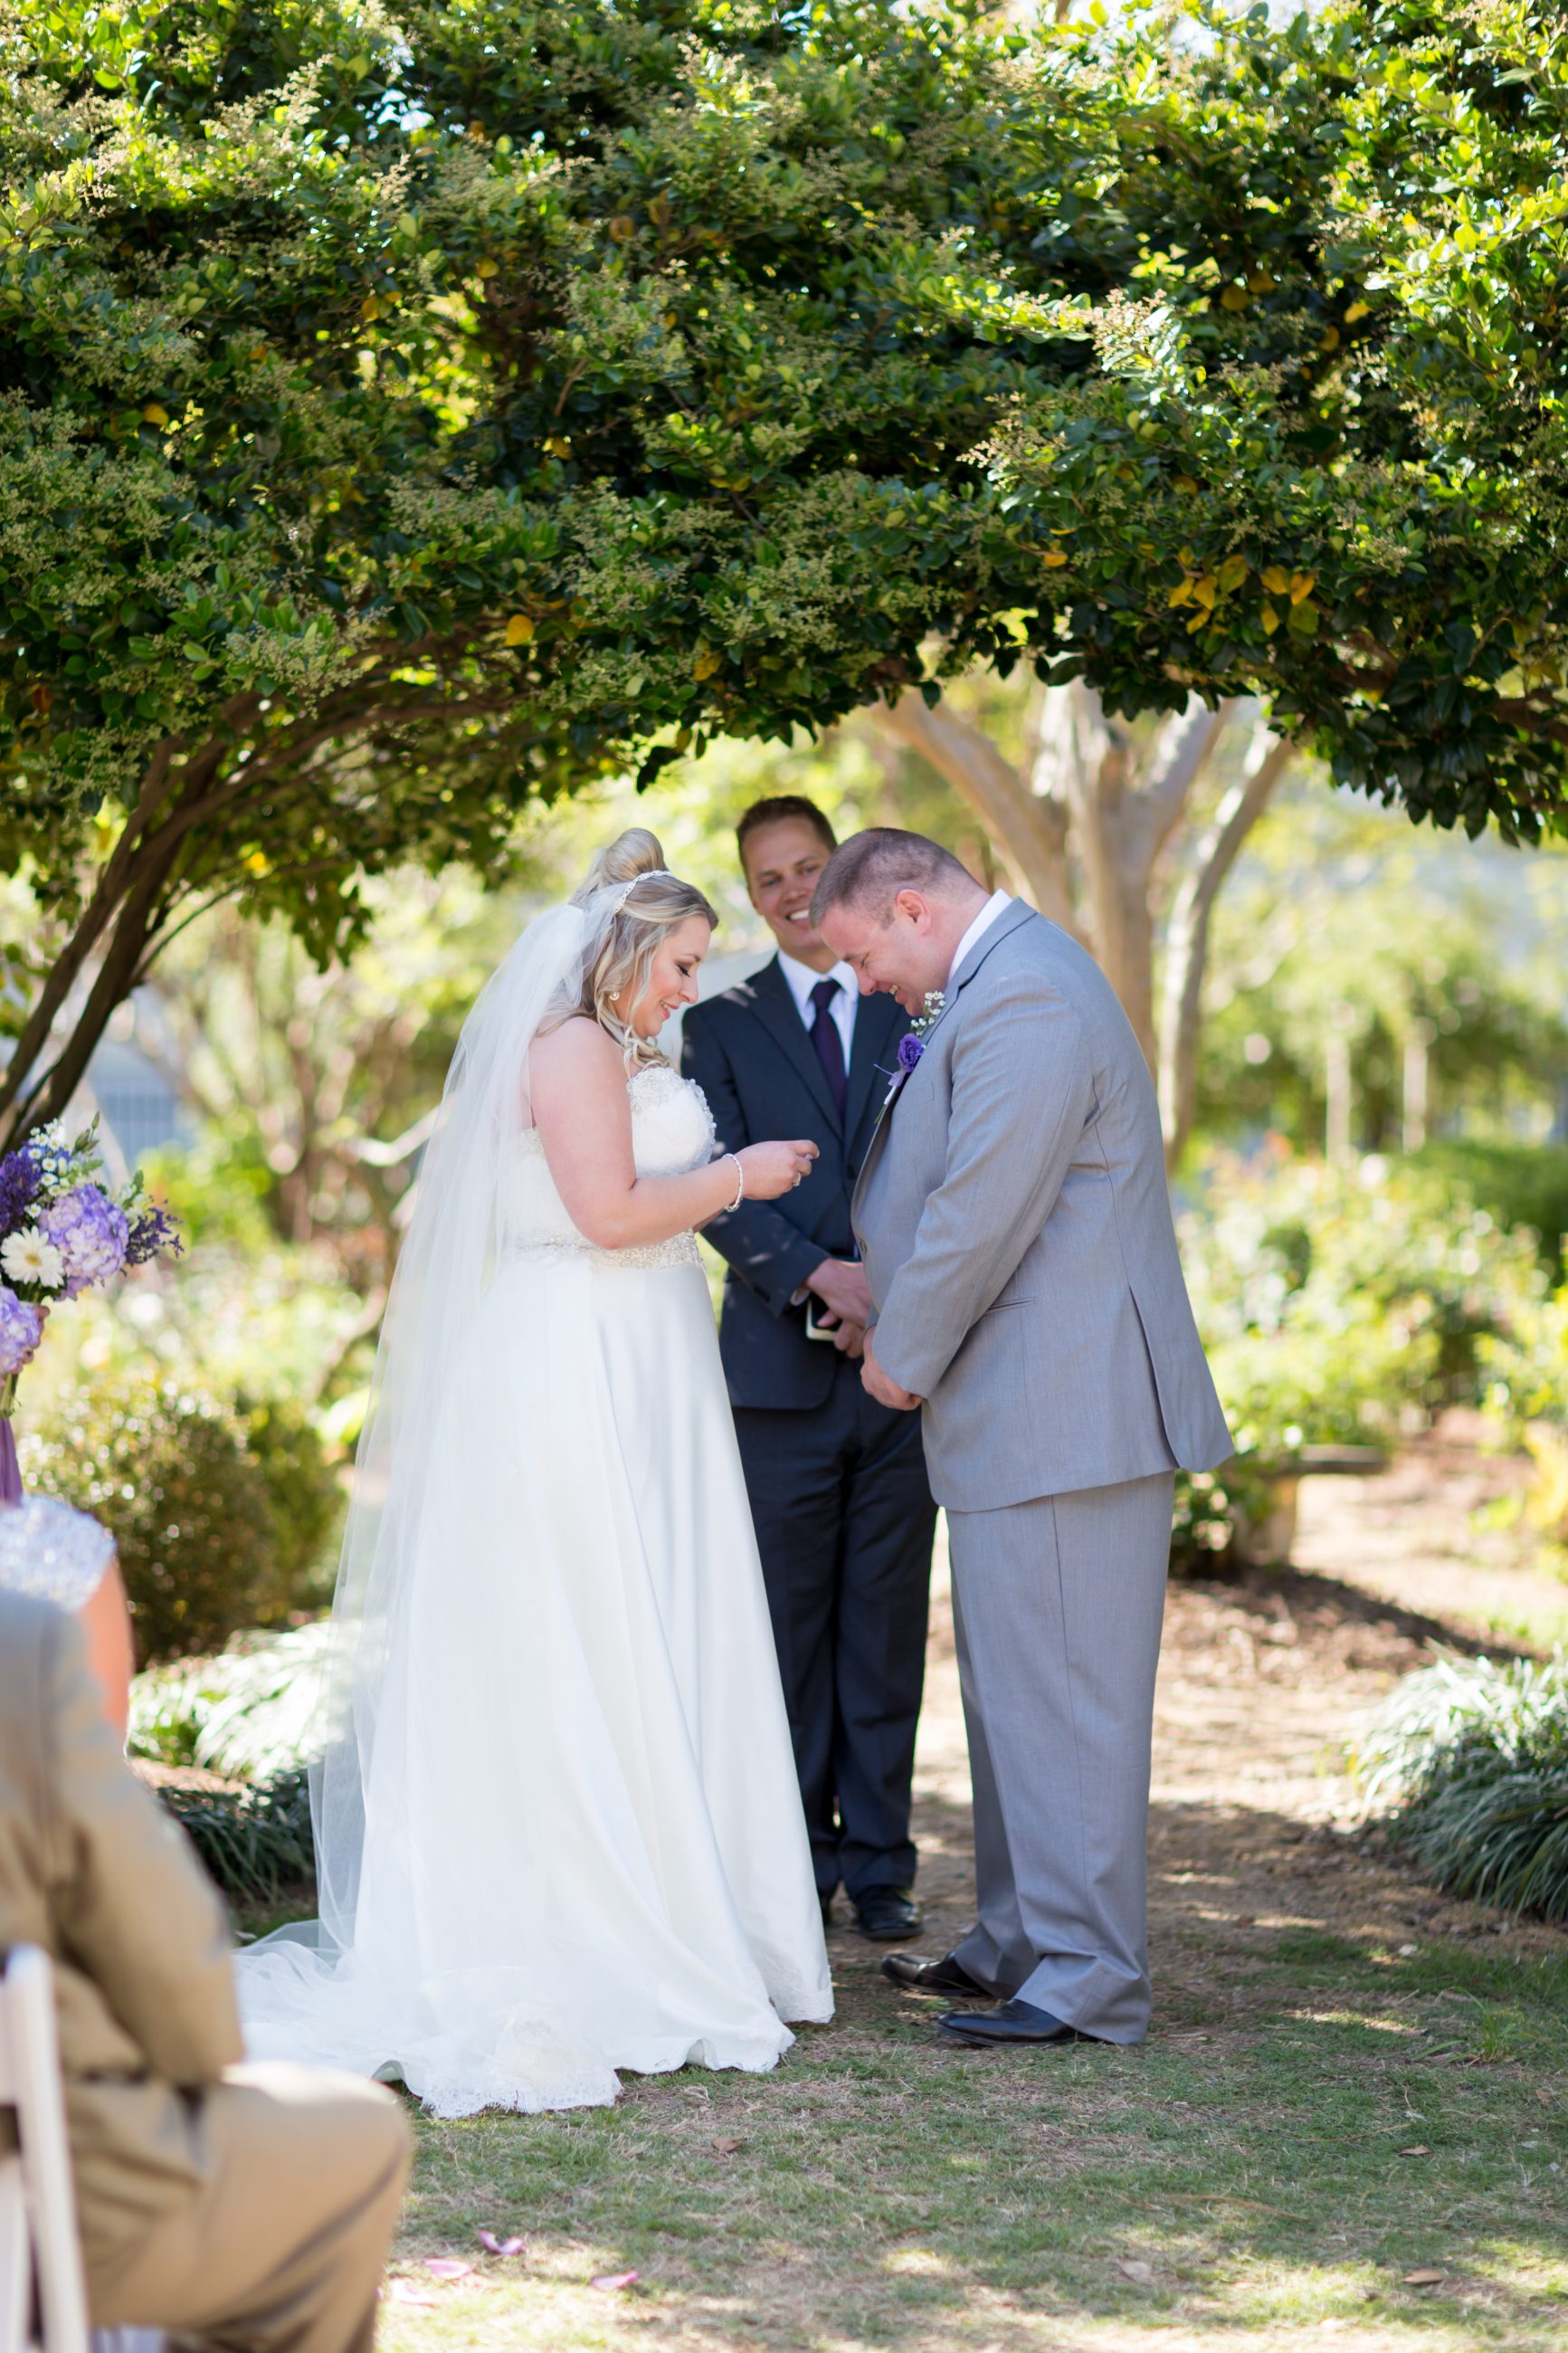 Exchanging vows during their wedding ceremony at McGill Rose Garden in Charlotte NC photo by Keith Marwitz Photography